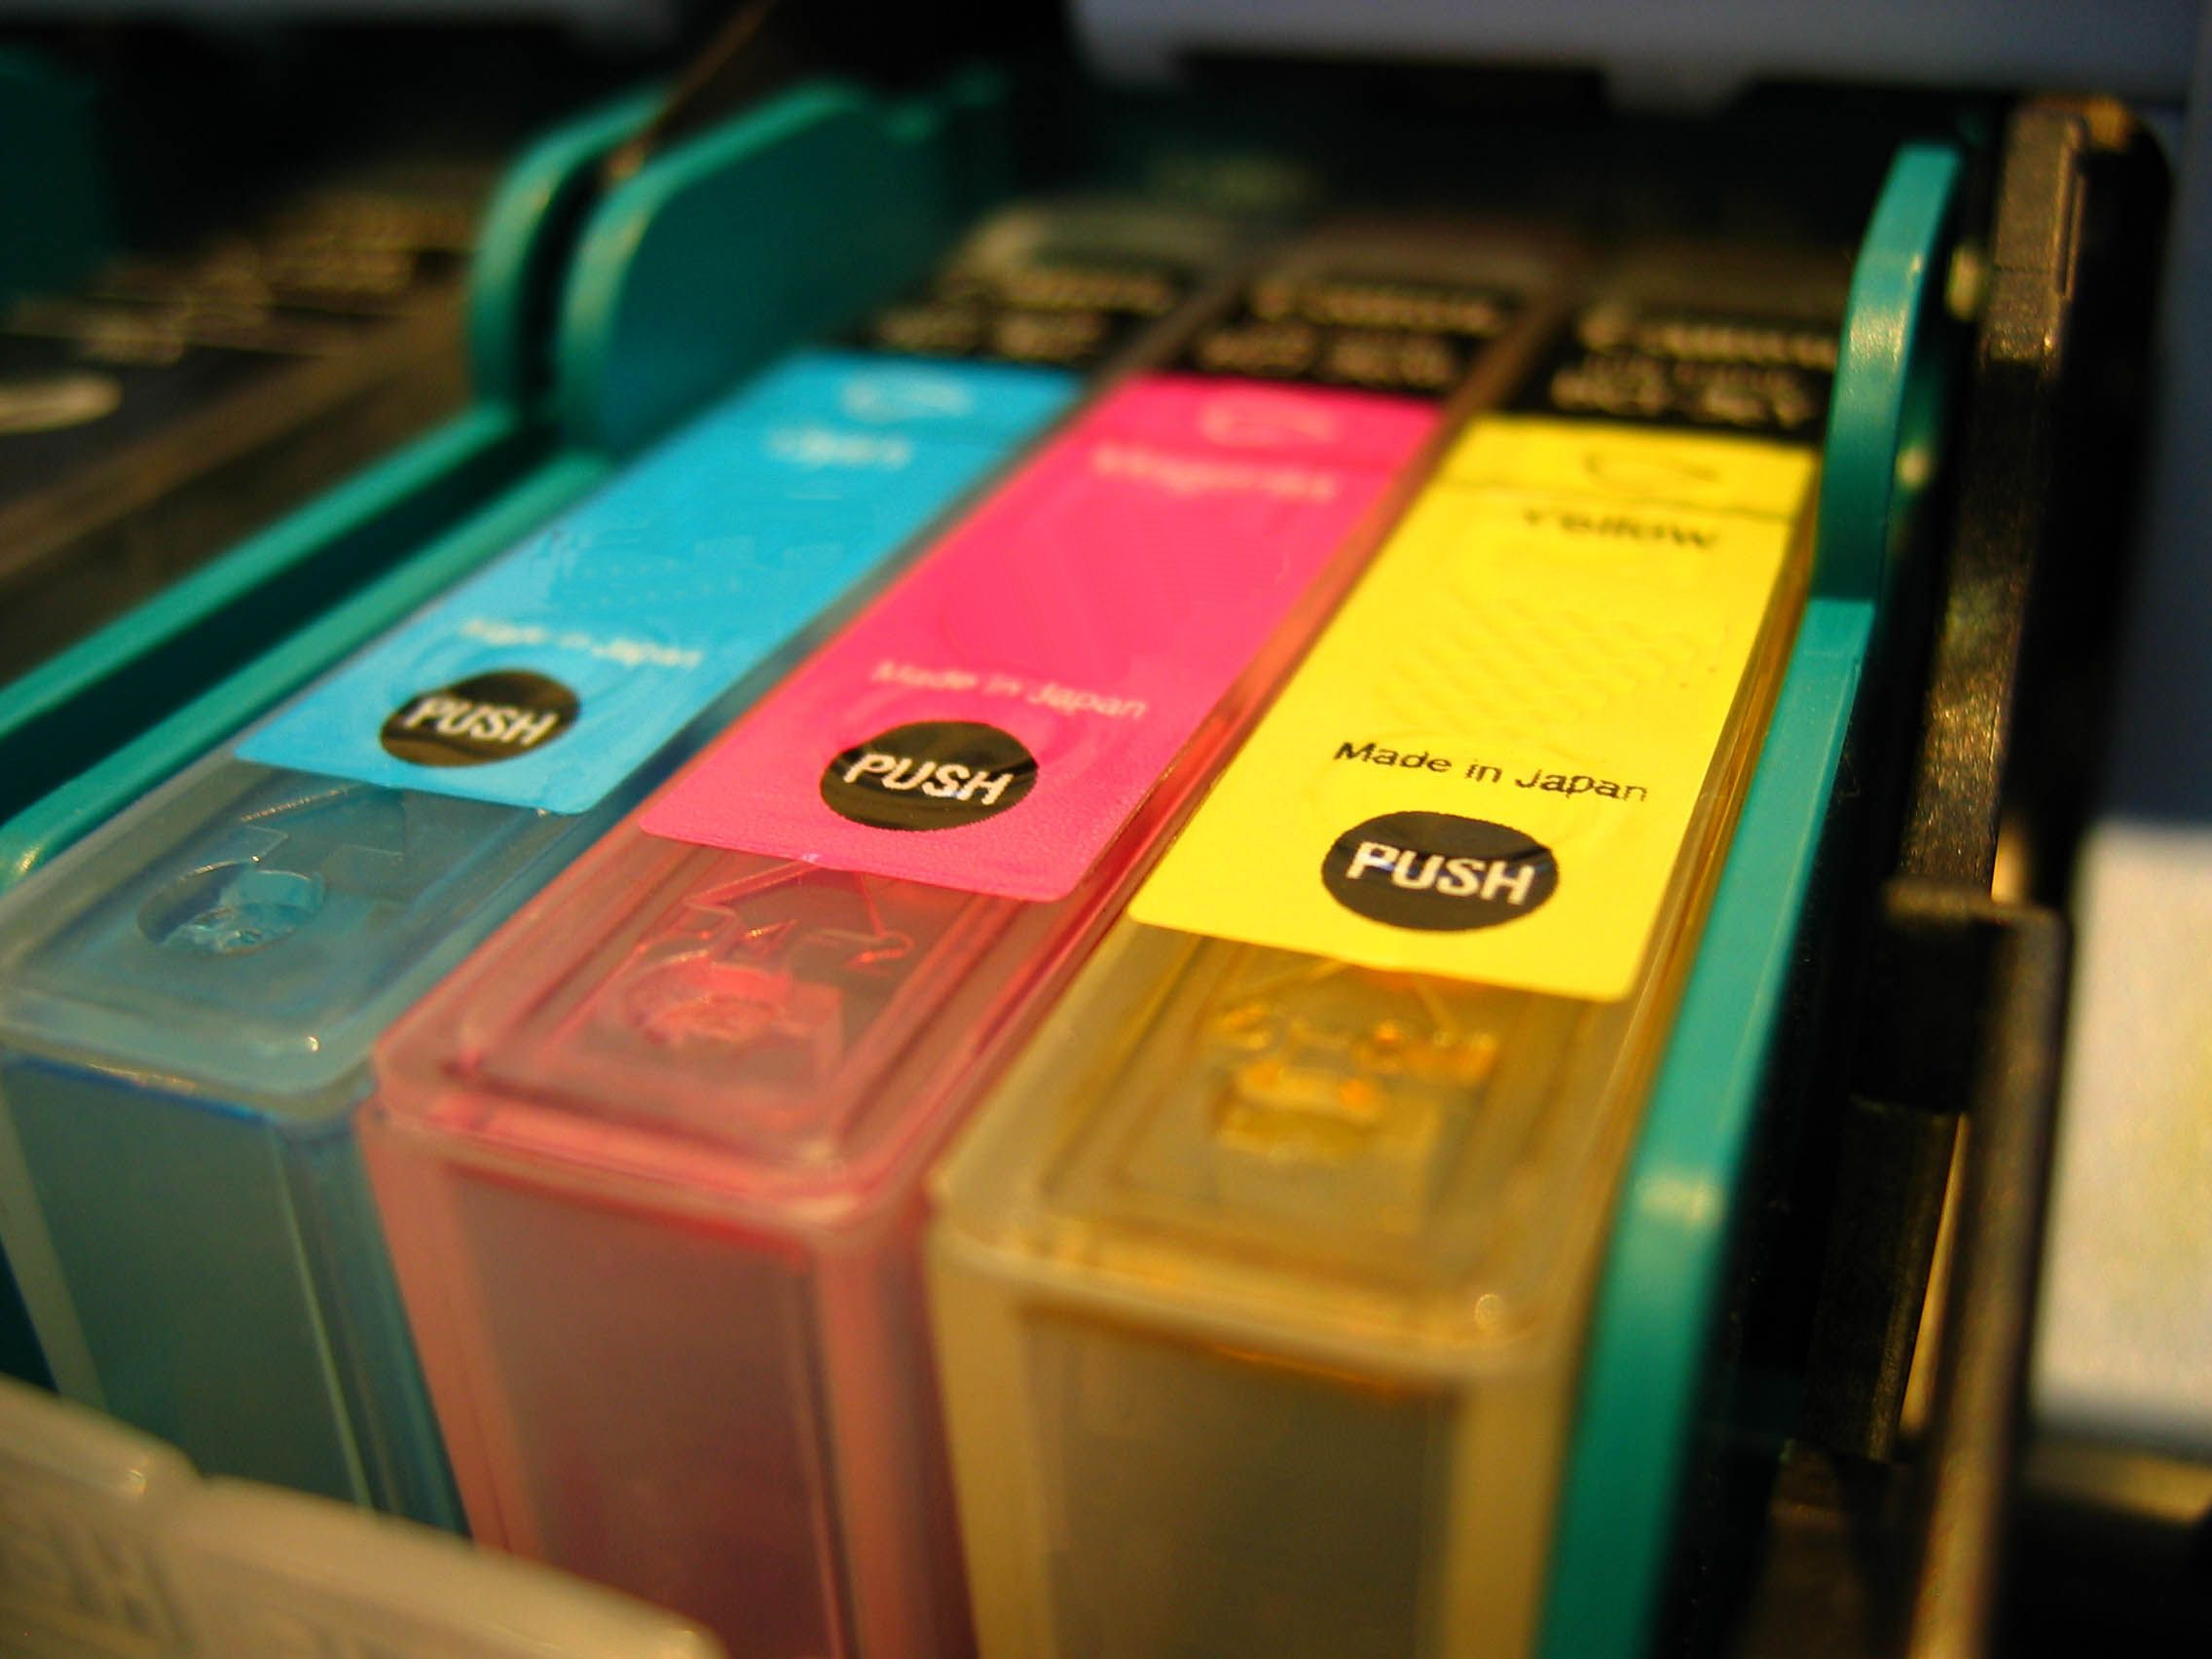 Printer ink cartridges and toner cartridges can be expensive save